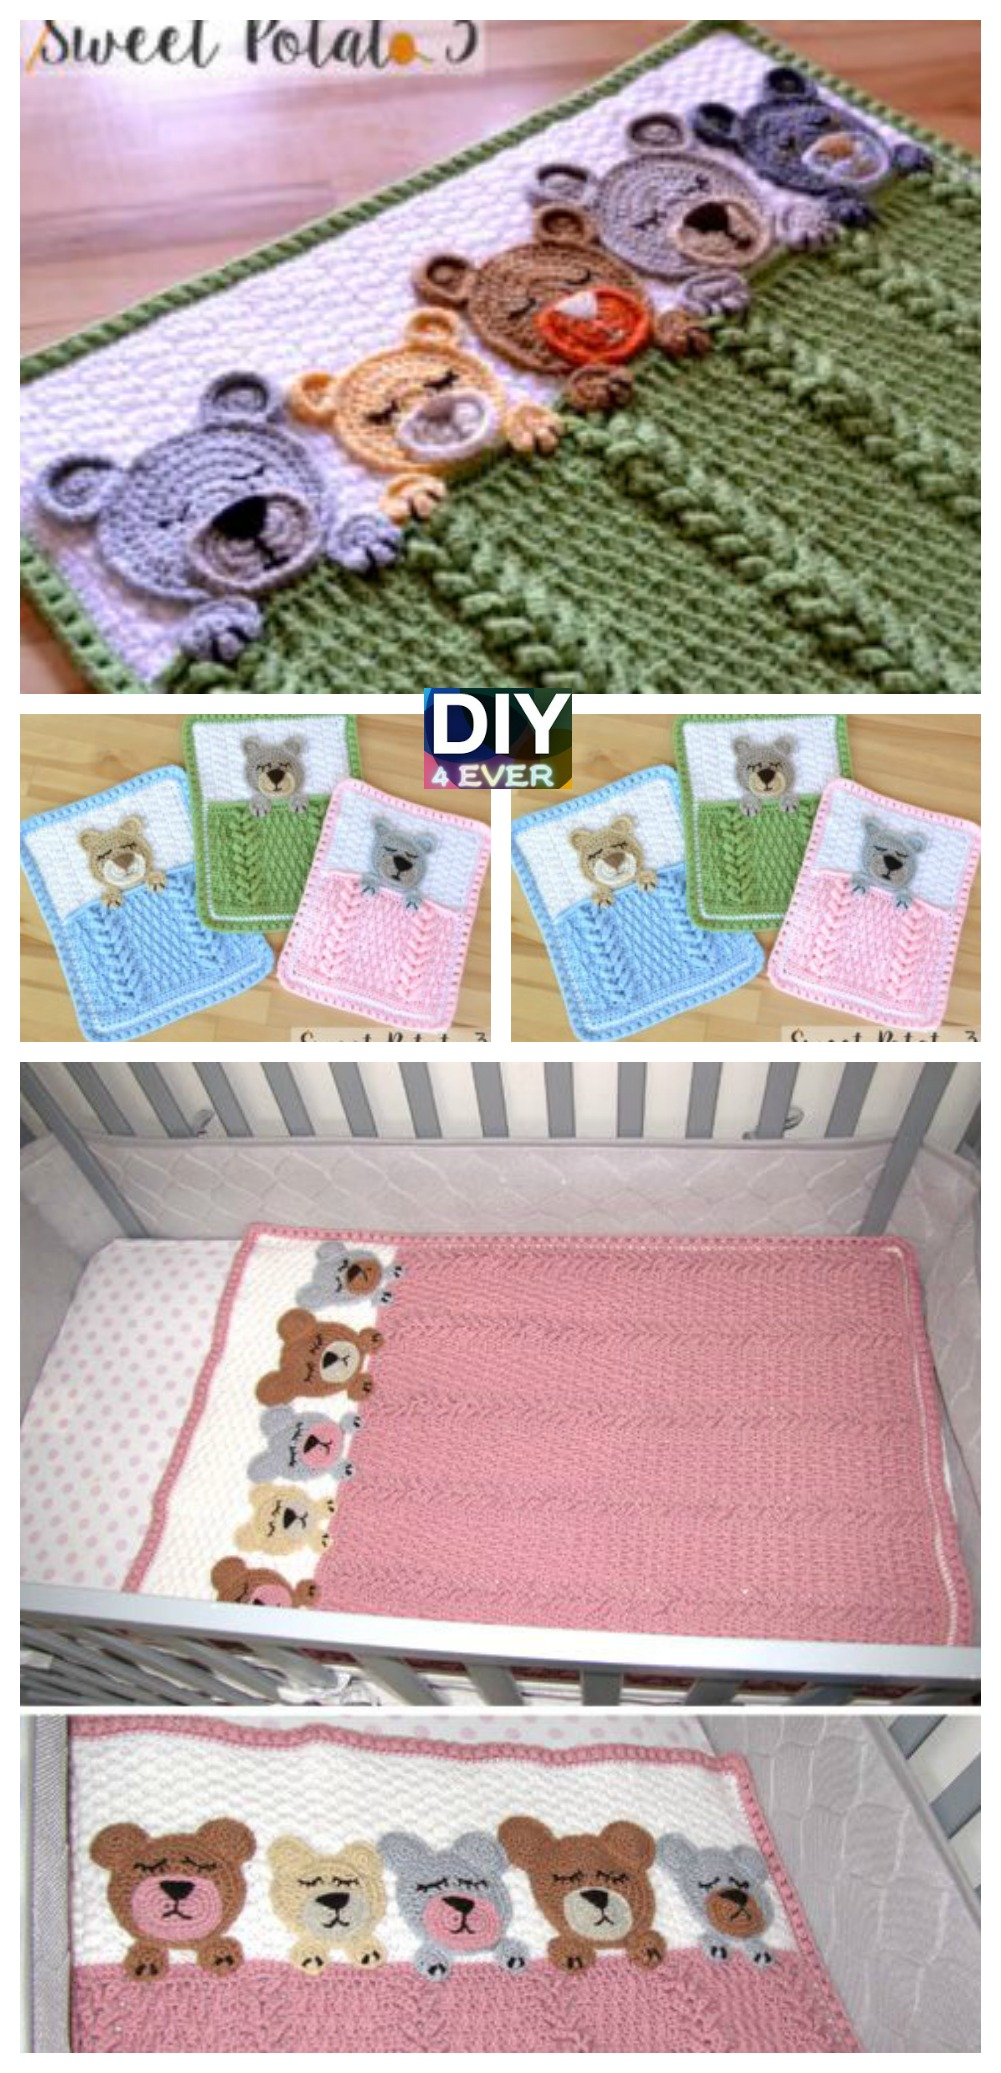 Sleep Tight Teddy Bear Blanket - Free Pattern - DIY 4 EVER